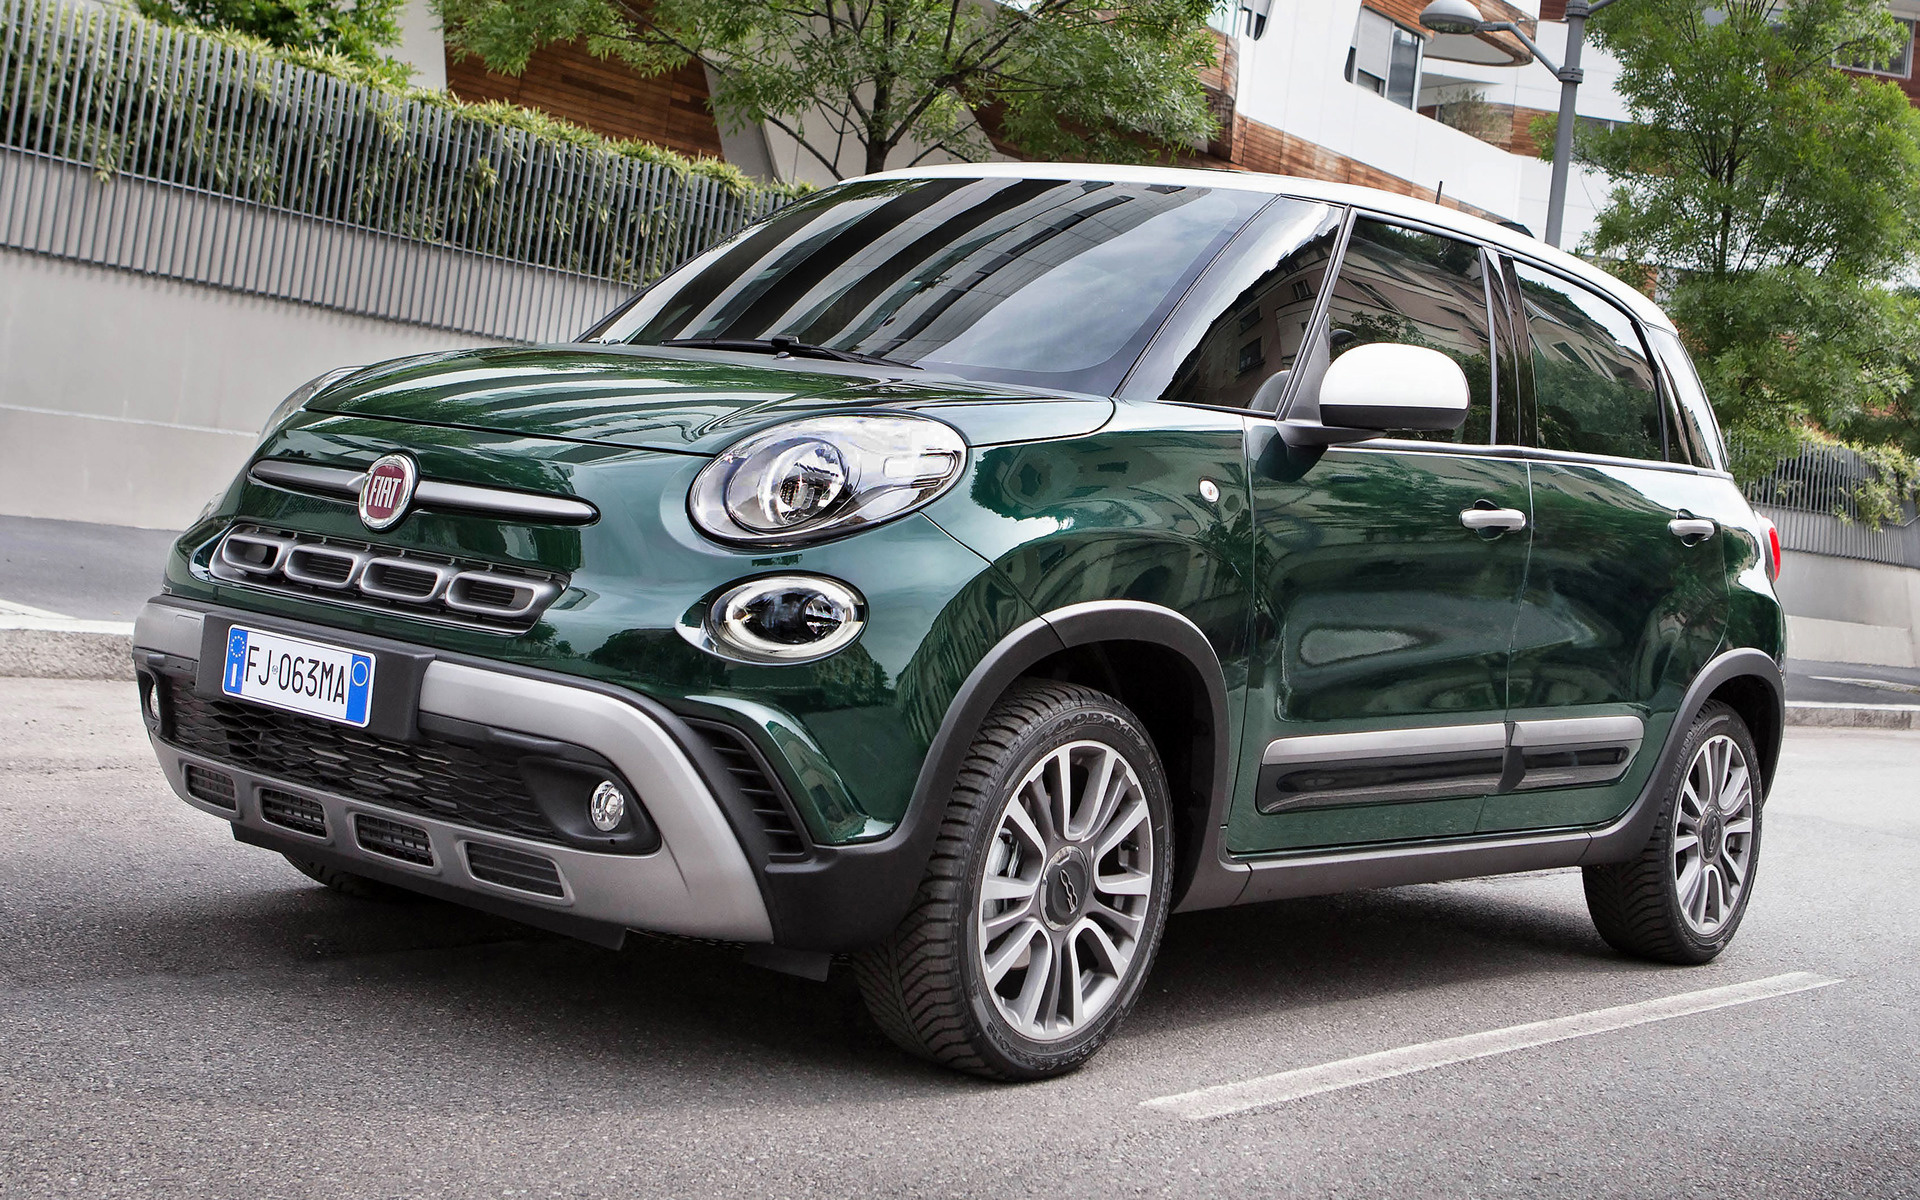 Cross Chrysler Jeep >> 2017 Fiat 500L Cross - Wallpapers and HD Images | Car Pixel